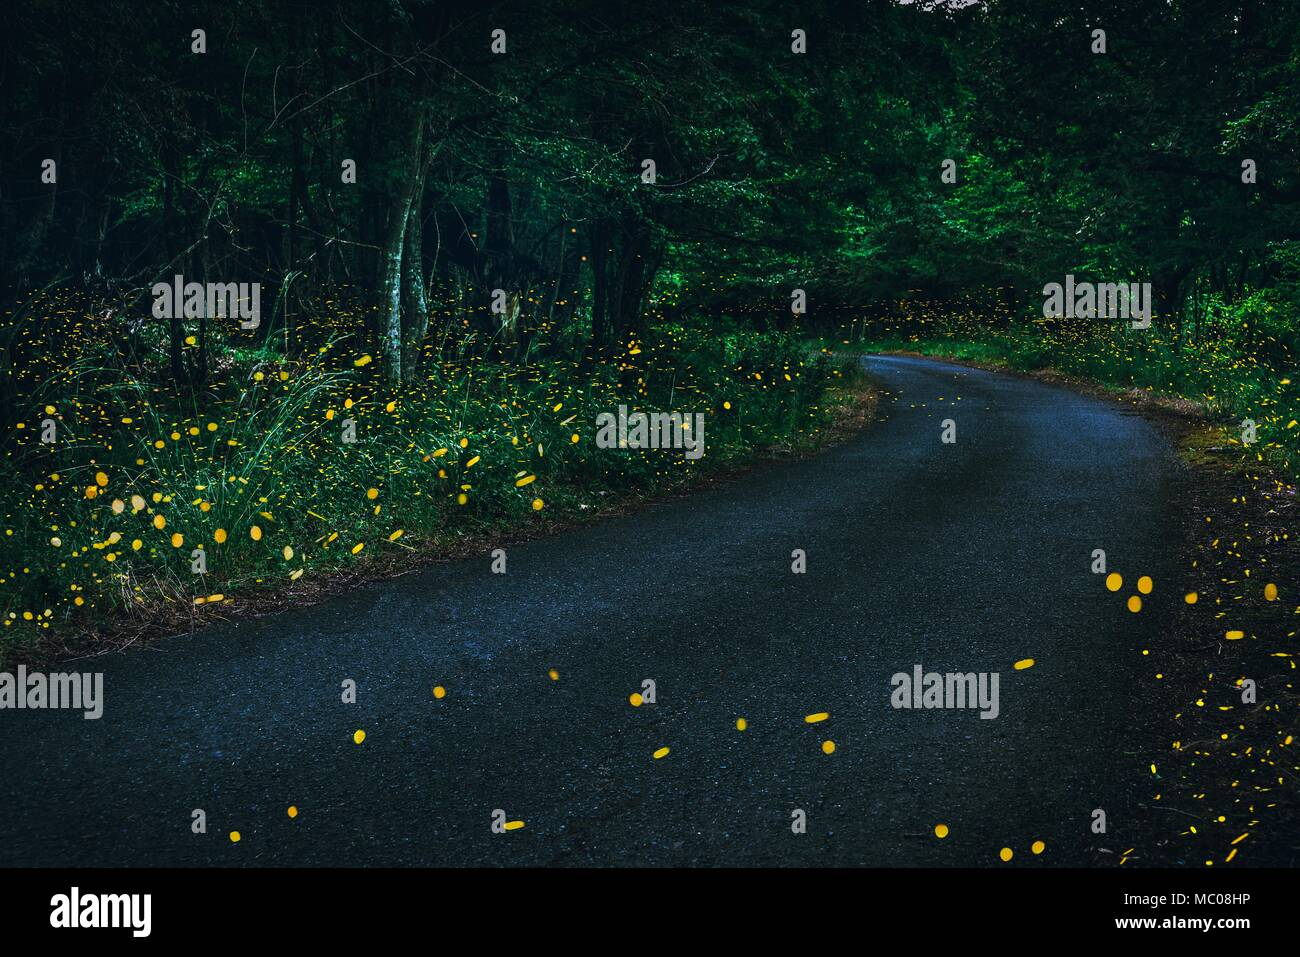 Fireflies flying in the forest at twilight. - Stock Image